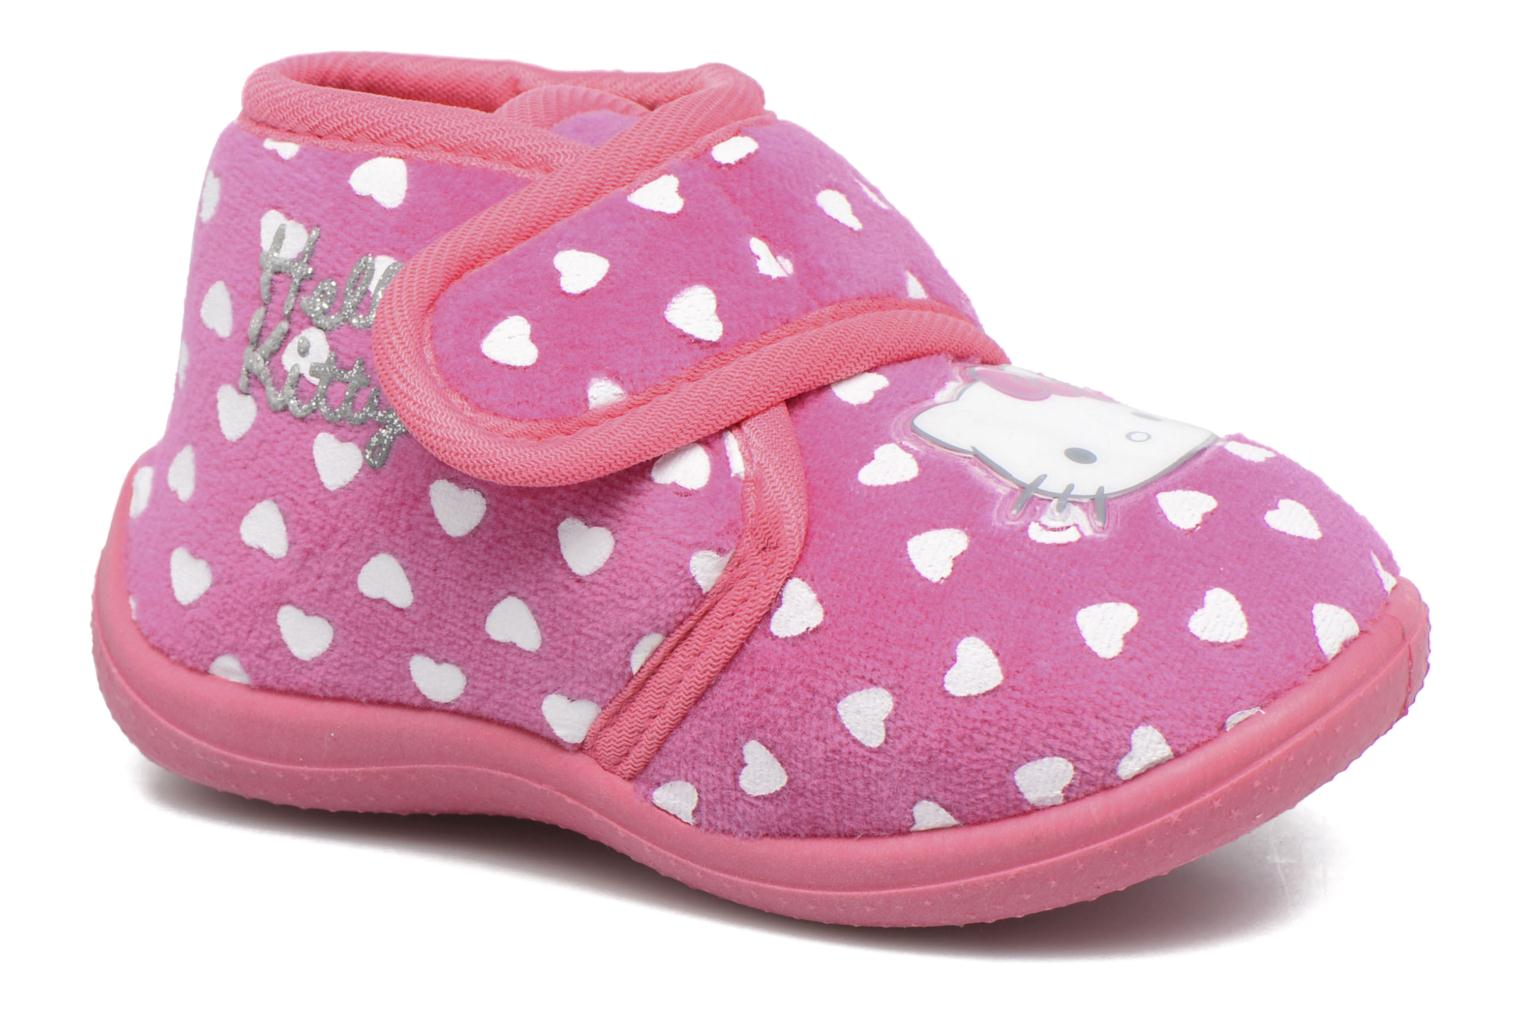 Chaussons Hello Kitty Hk Lalie Rose vue détail/paire